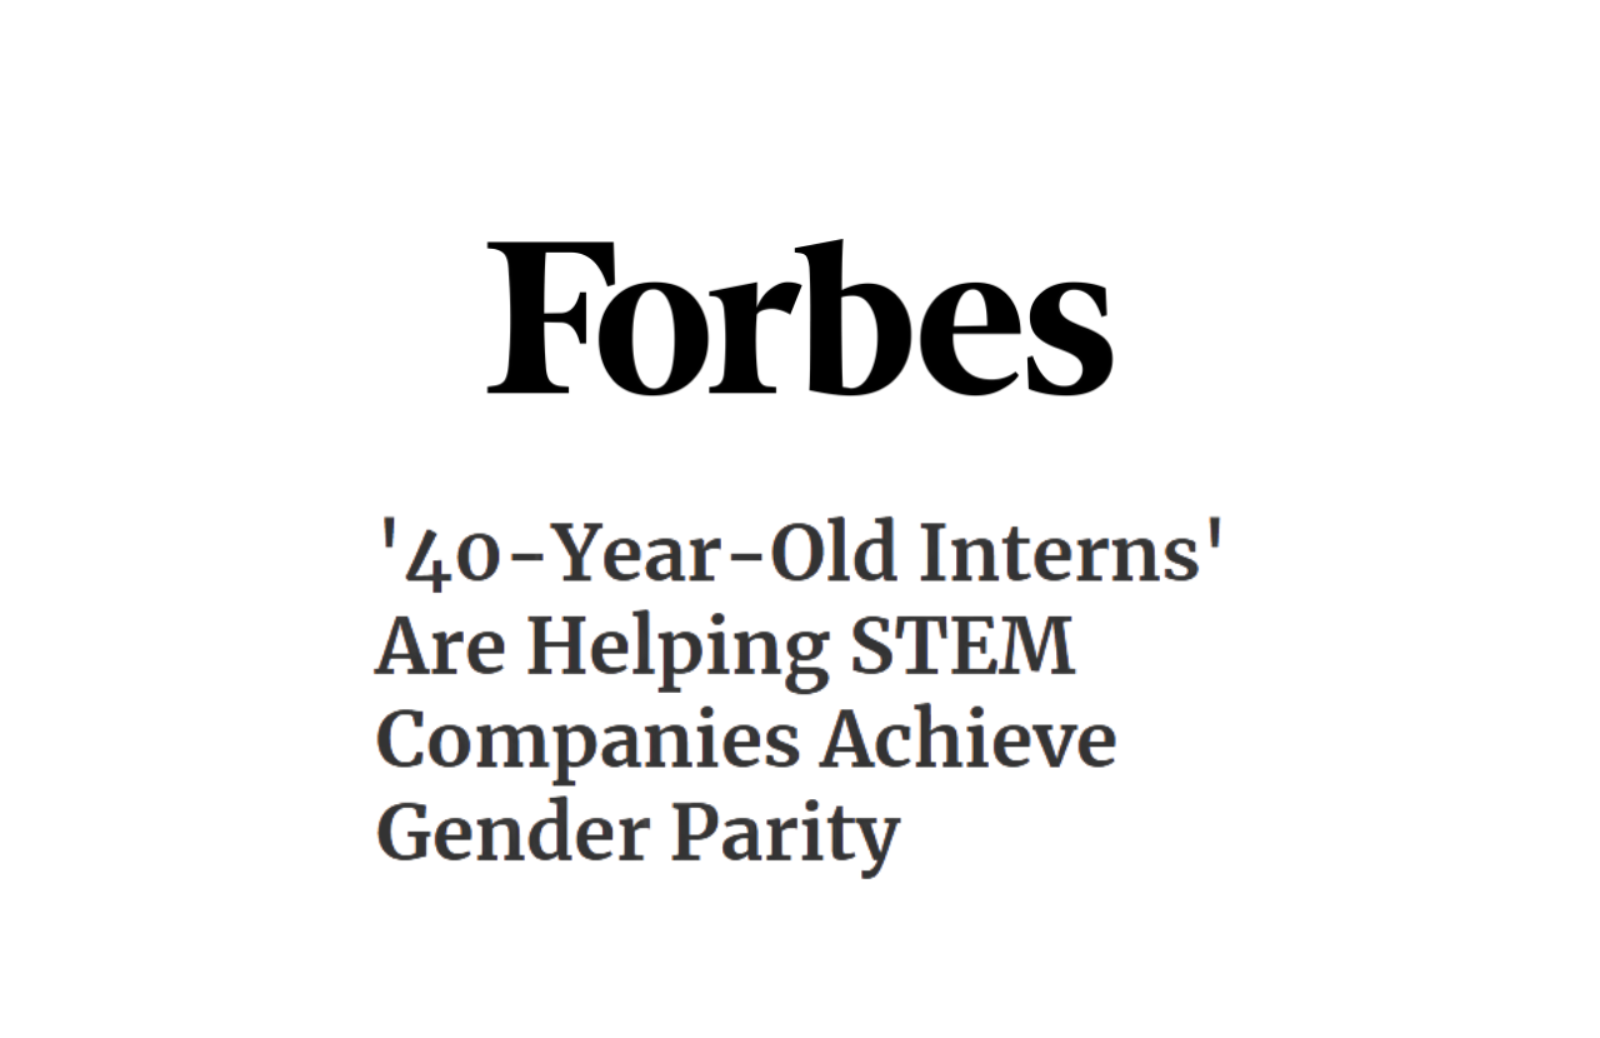 Forbes 40 Year Old Interns Helping Stem Companies Gender Parity news thumbnail